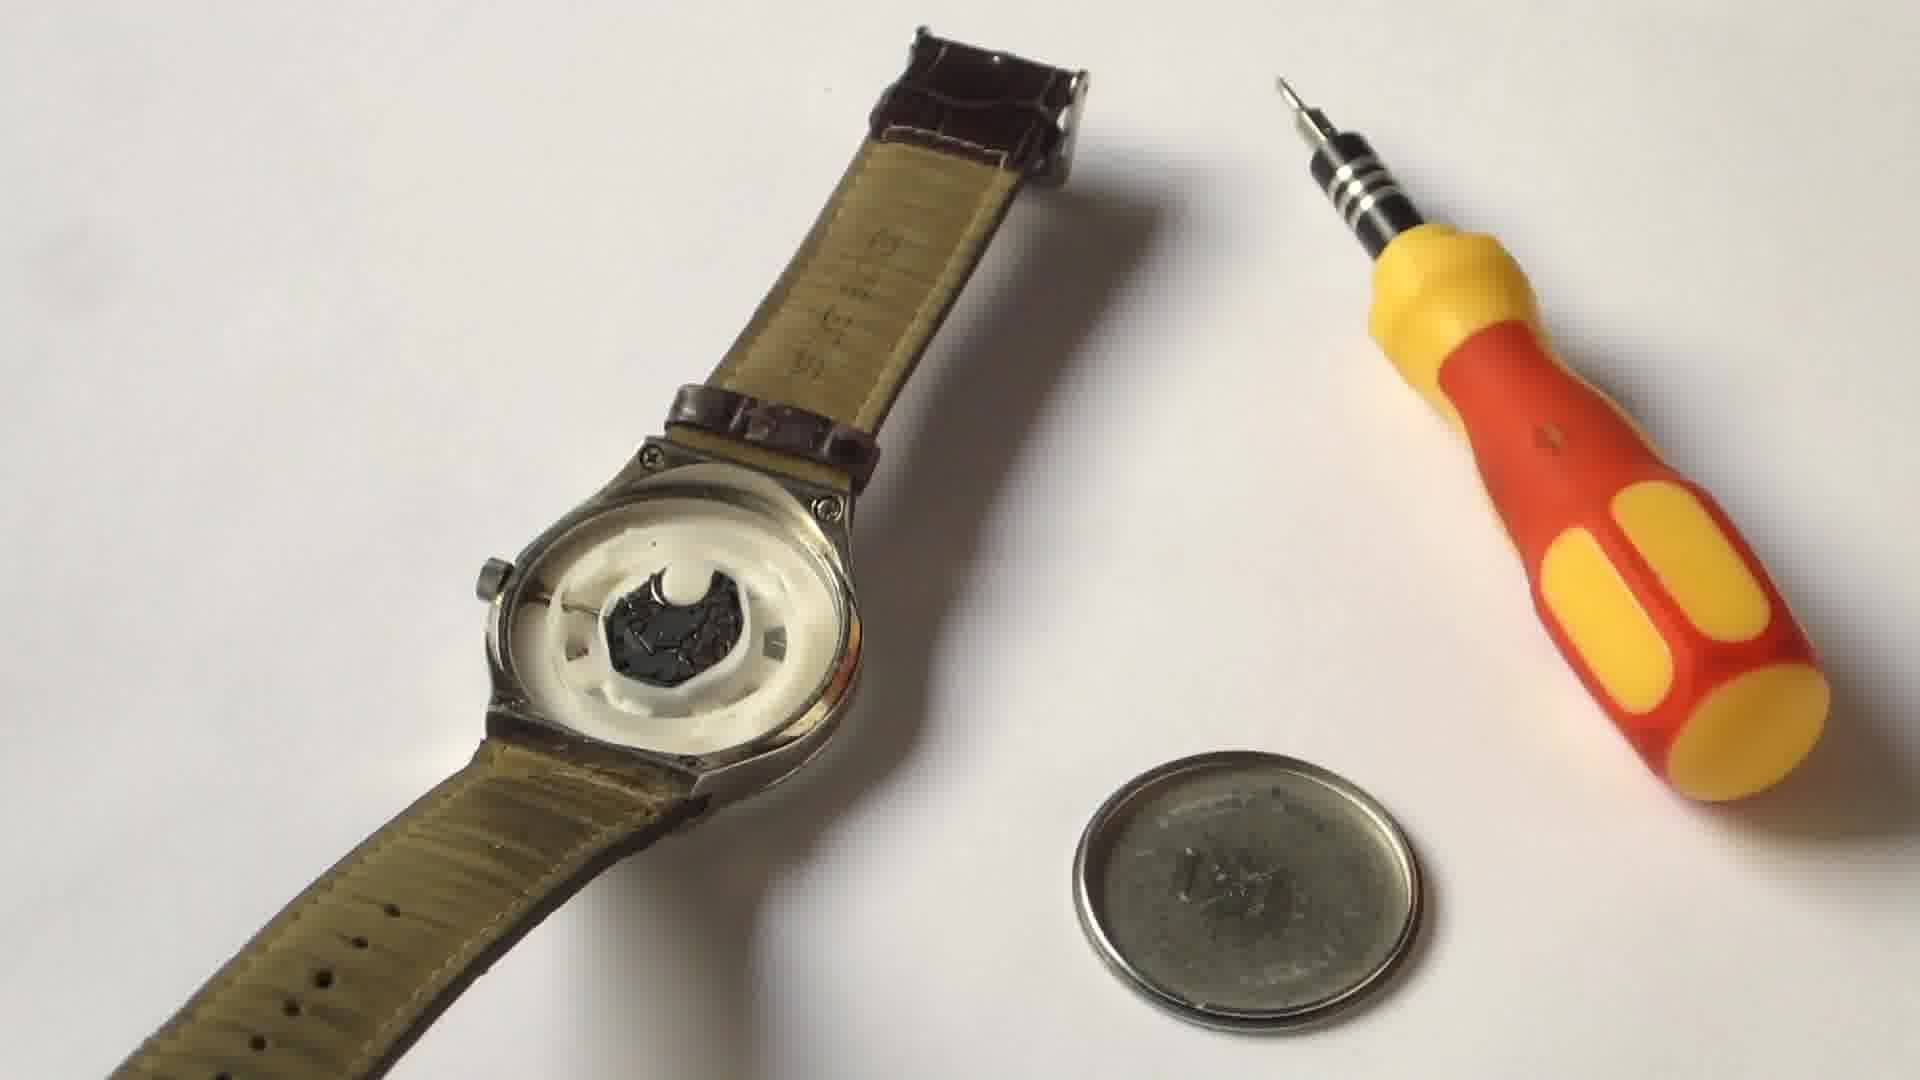 How To Pry Off A Watch Backing Without Proper Tools Watch Battery Battery Repair Watches